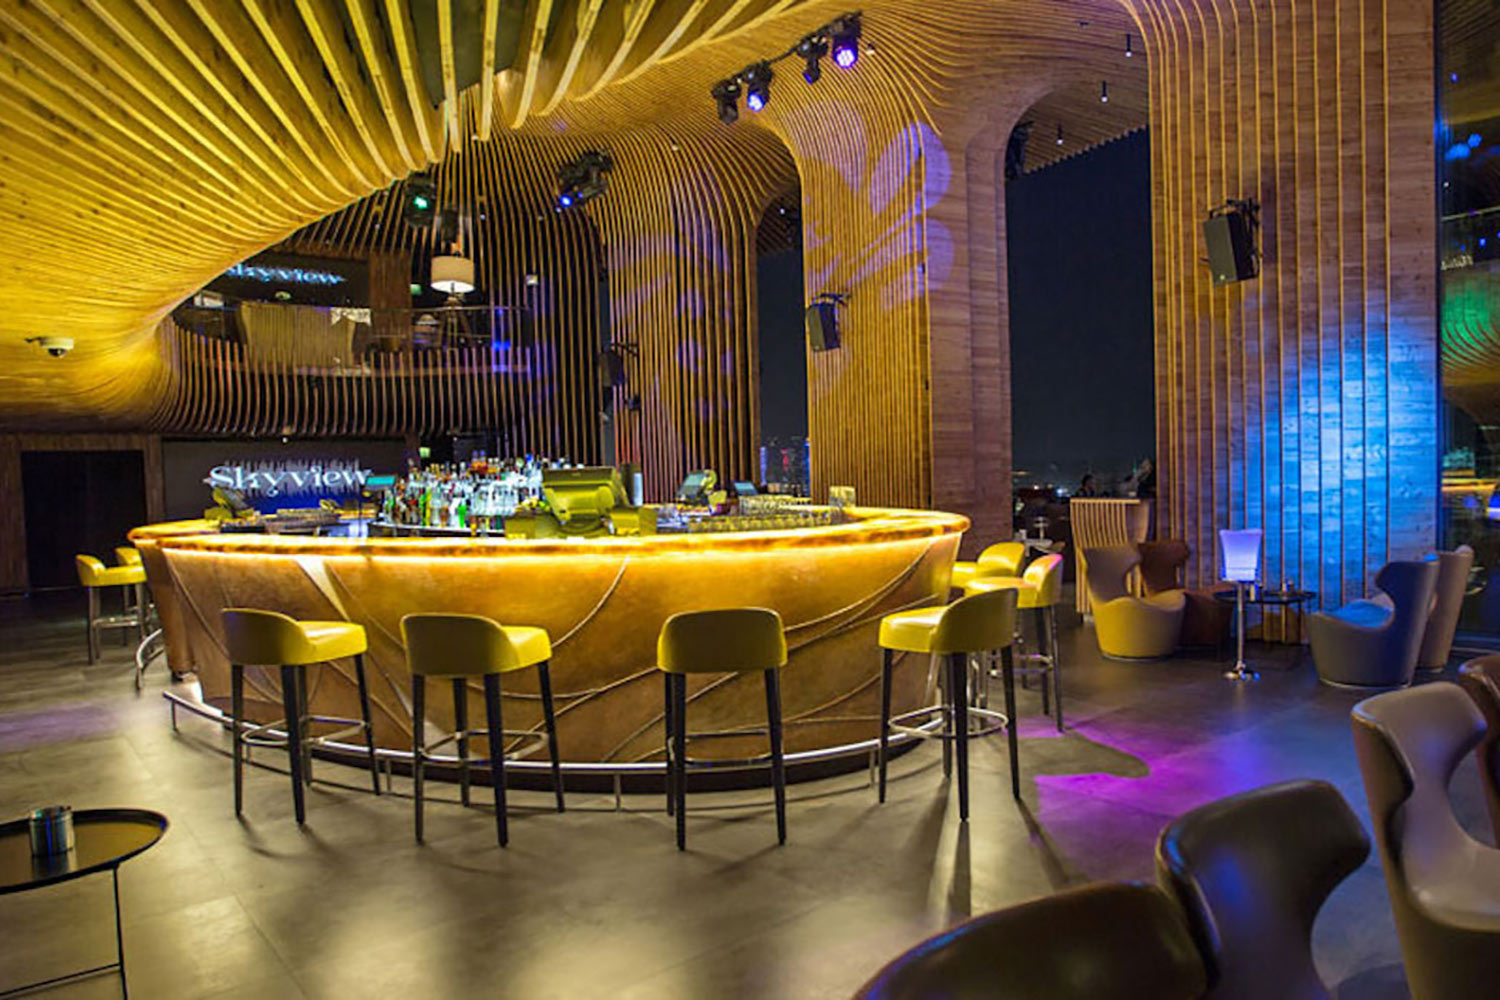 La Cigale, Doha's newest luxury hotel. WSDG performed a full acoustic makeover. Rooftop Bar 6